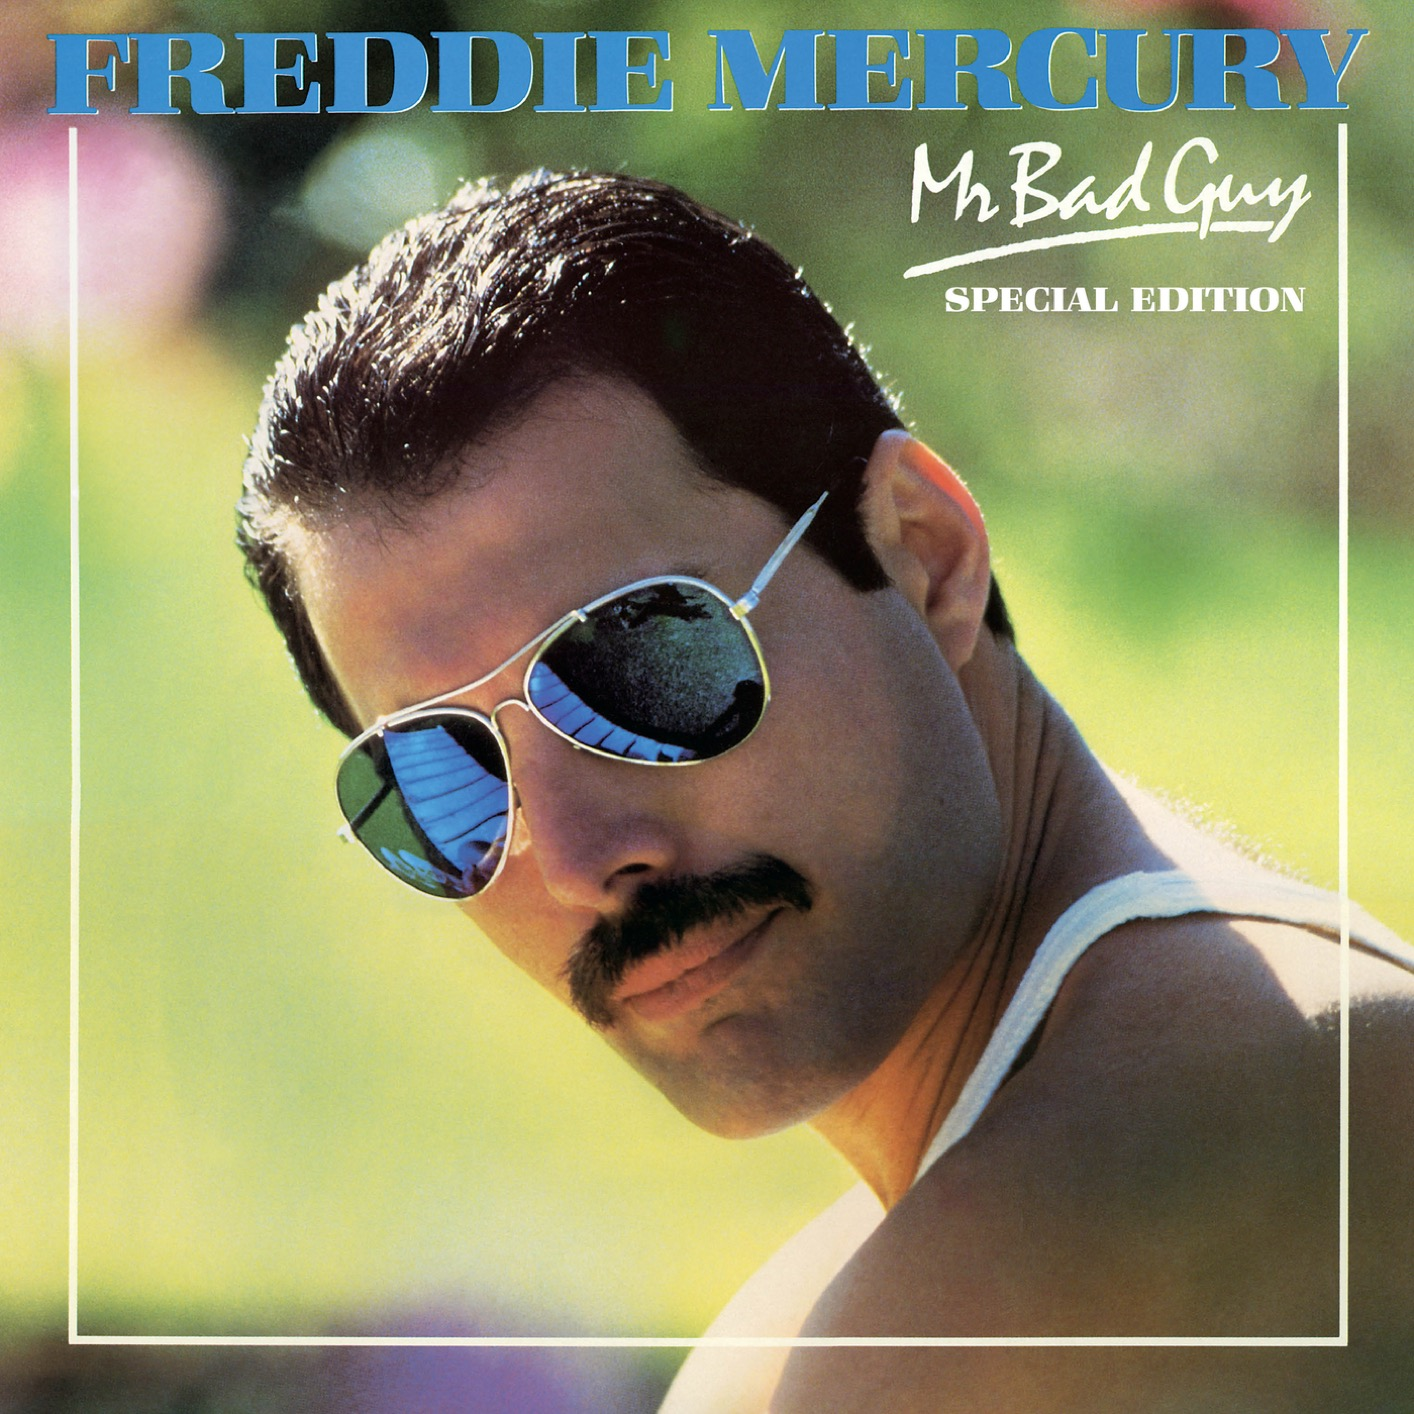 Freddie Mercury - Mr Bad Guy (Special Edition) (2019) [Official Digital Download 24/48]